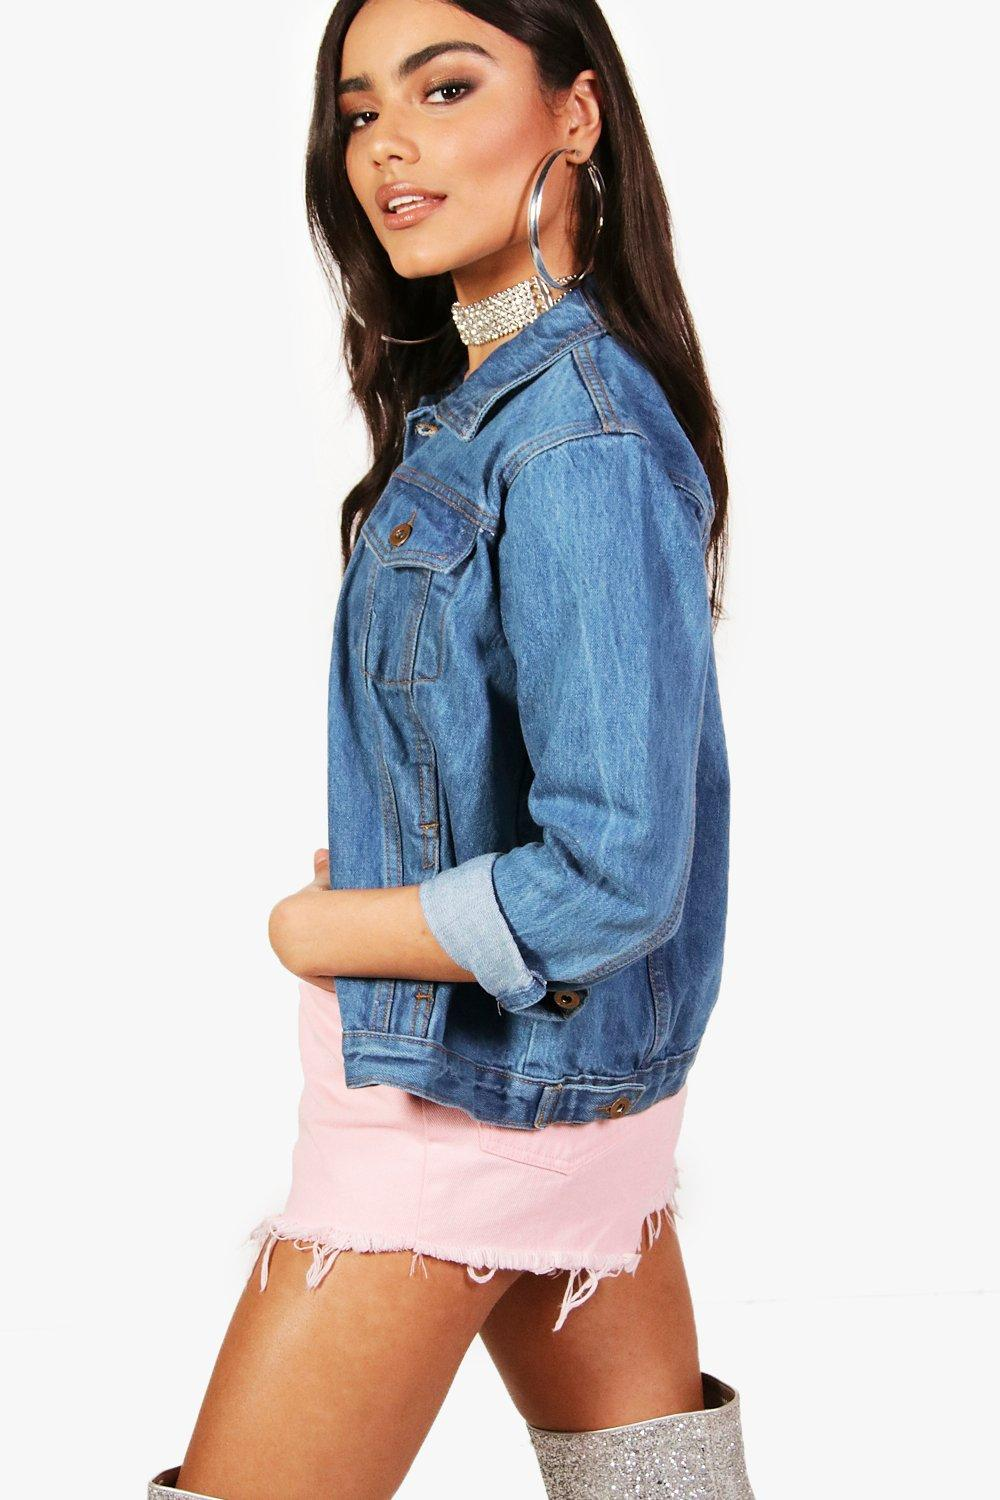 Jacket Oversized blue blue Jacket Denim Oversized mid Denim mid dI45qwd